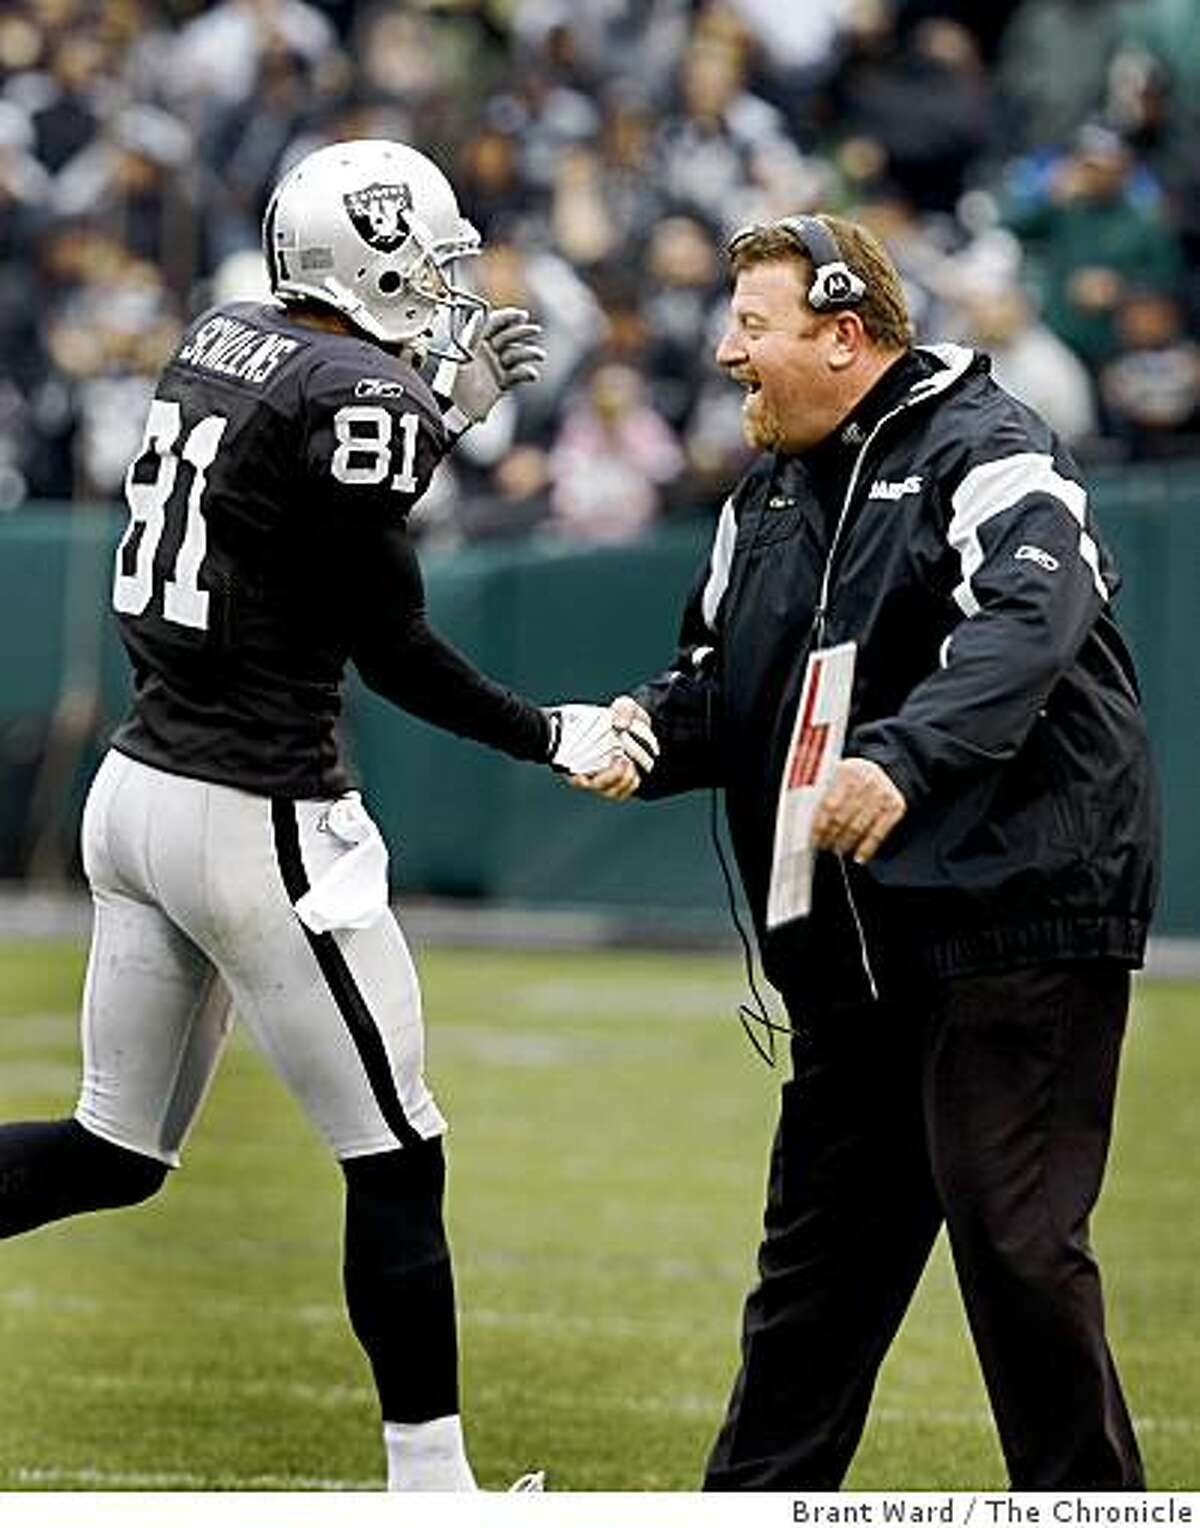 Raiders head coach Tom Cable congratulates Chaz Schilens (81) after his first quarter TD.